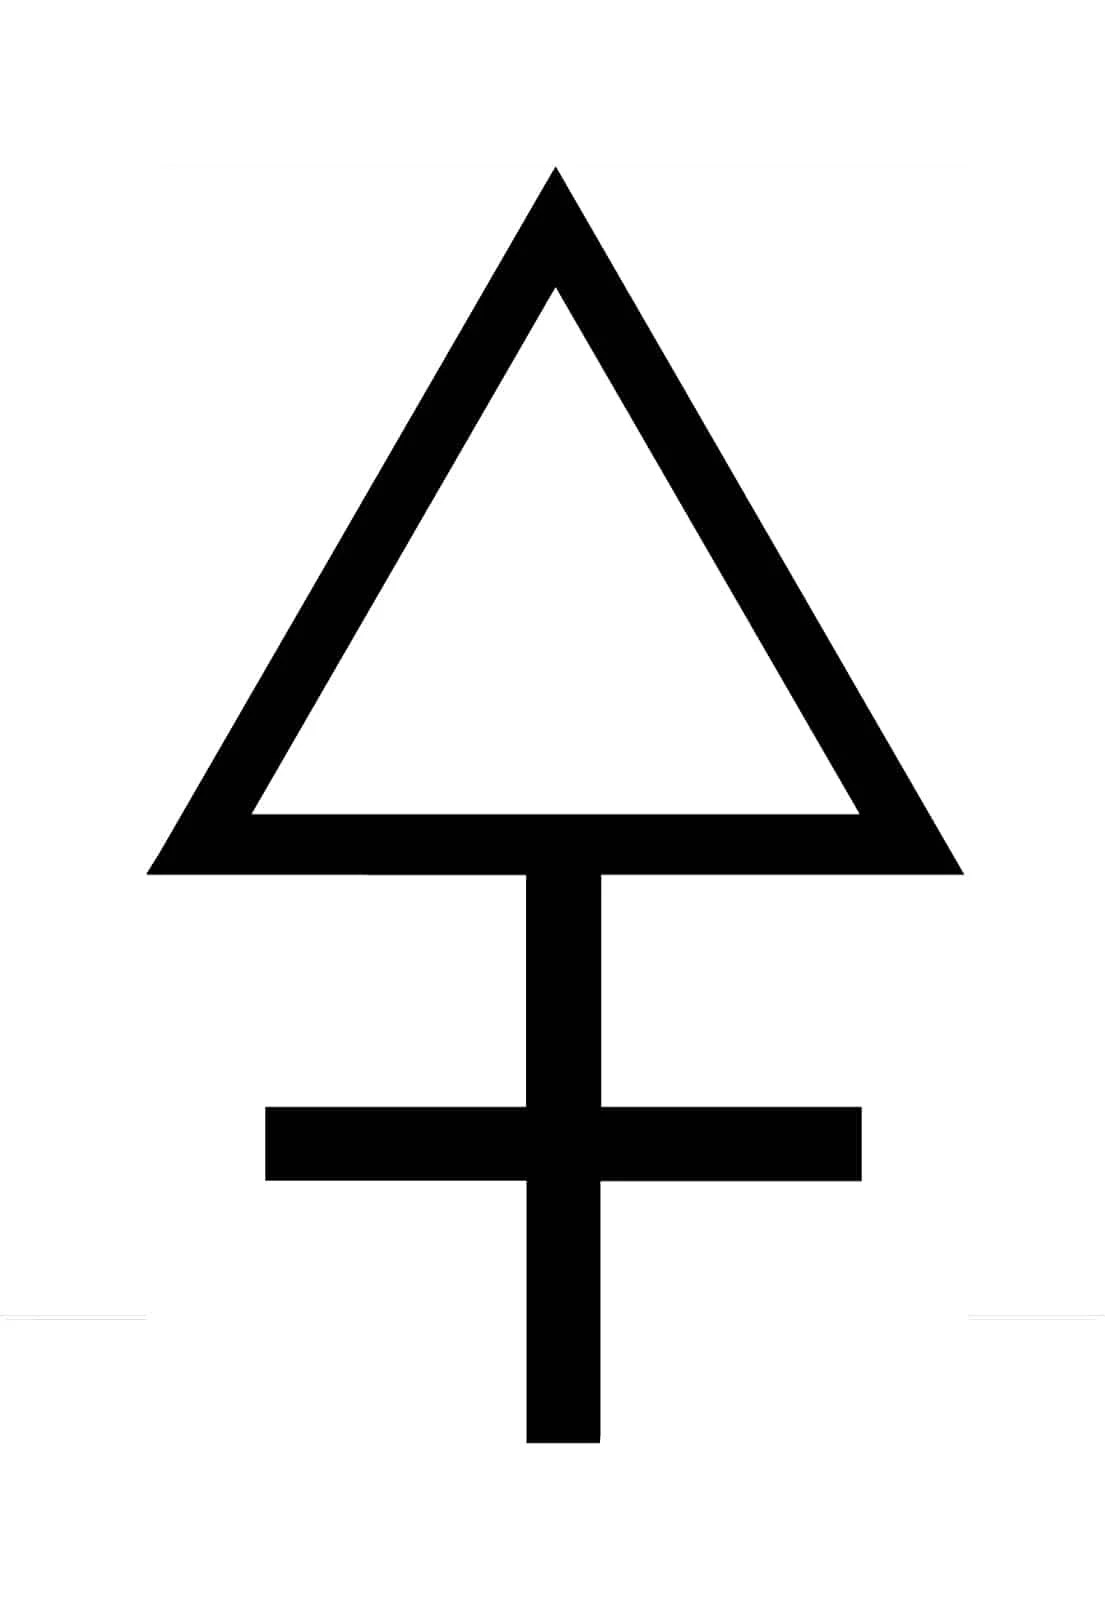 Symbol Triangle With Open Bottom